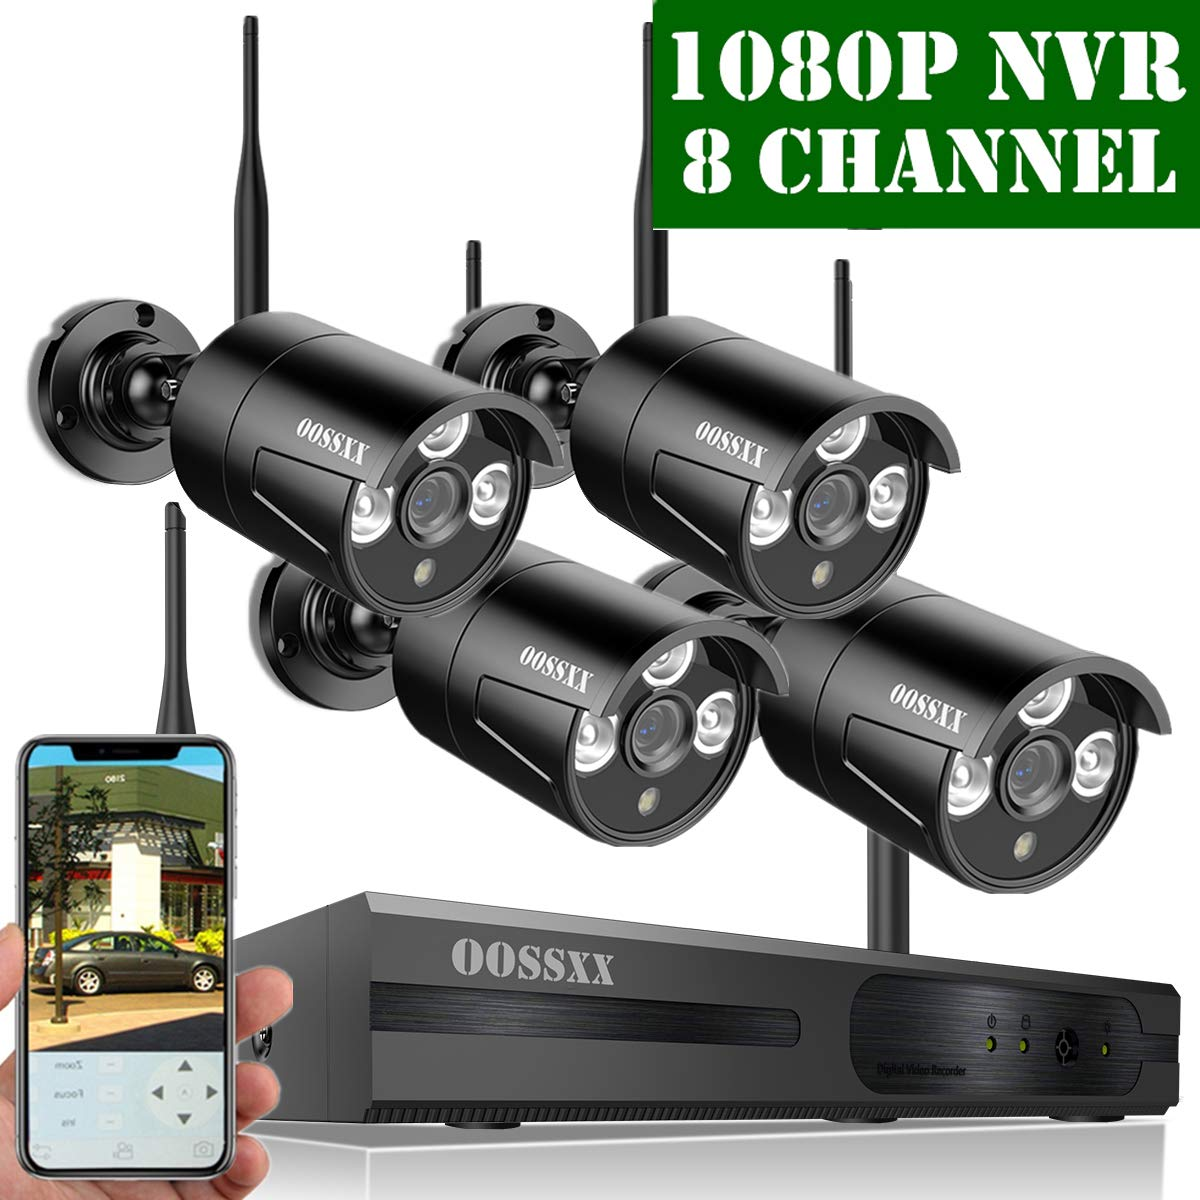 【2019 Update】 OOSSXX HD 1080P 8-Channel Wireless Security Camera System,4 pcs 720P 1.0 Megapixel Wireless Weatherproof Bullet IP Cameras,Plug Play,70FT Night Vision,P2P,App, No Hard Drive by OOSSXX